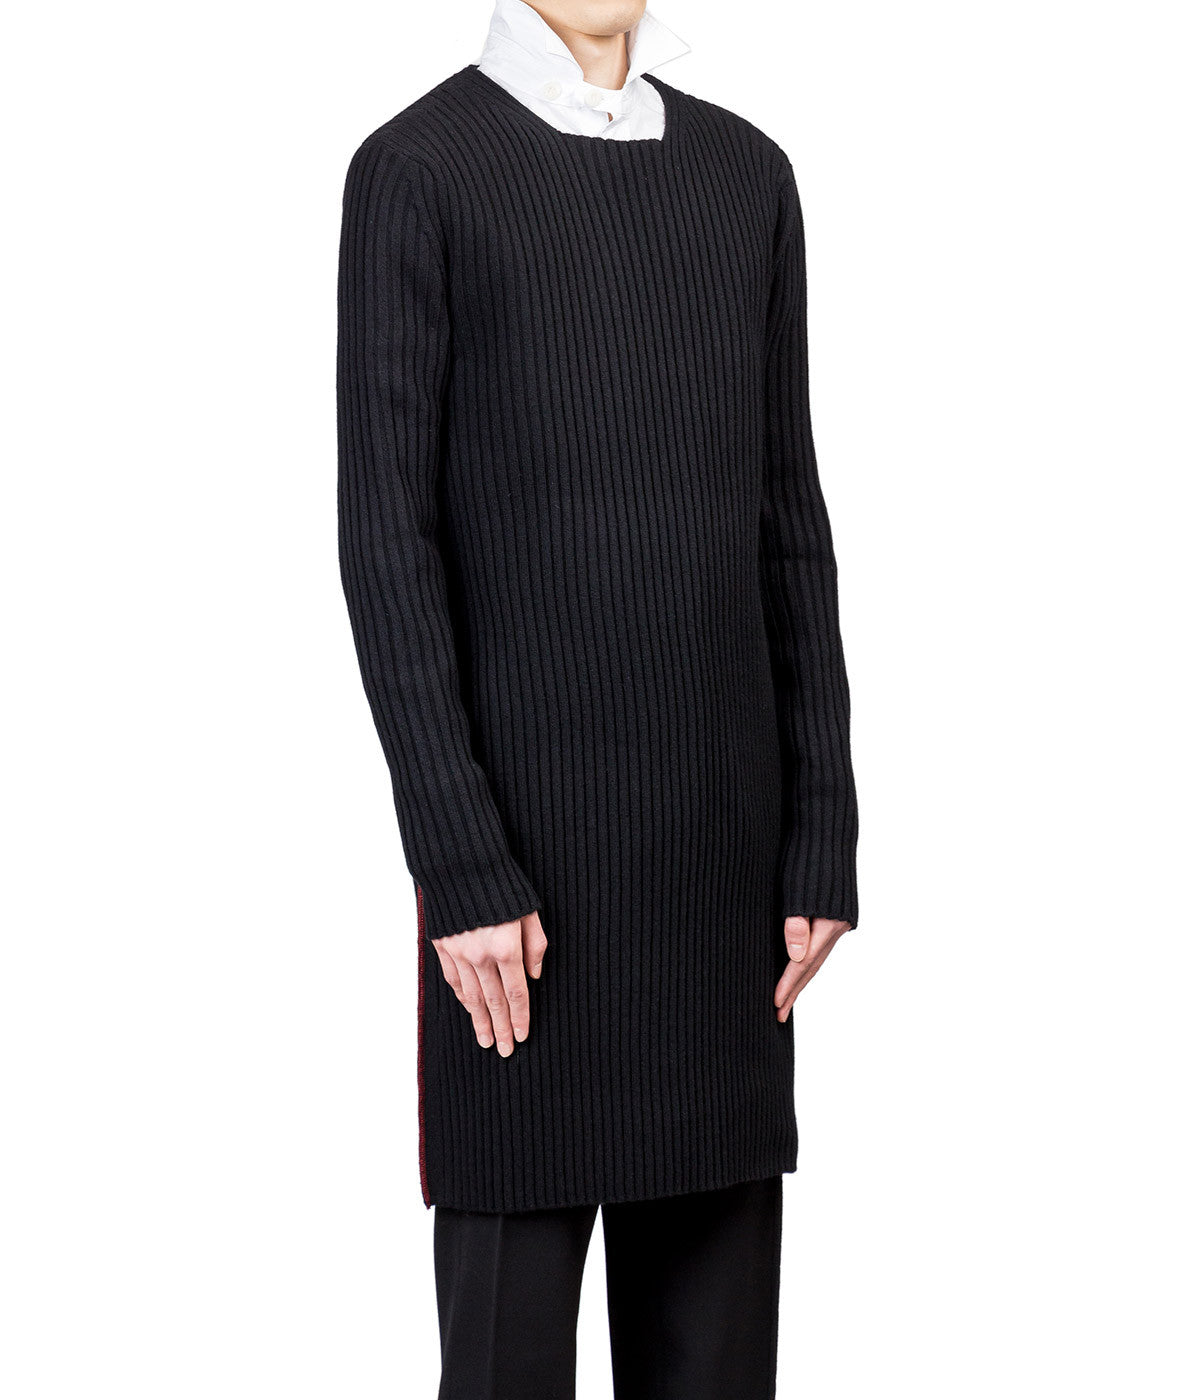 Black Long Knitwear